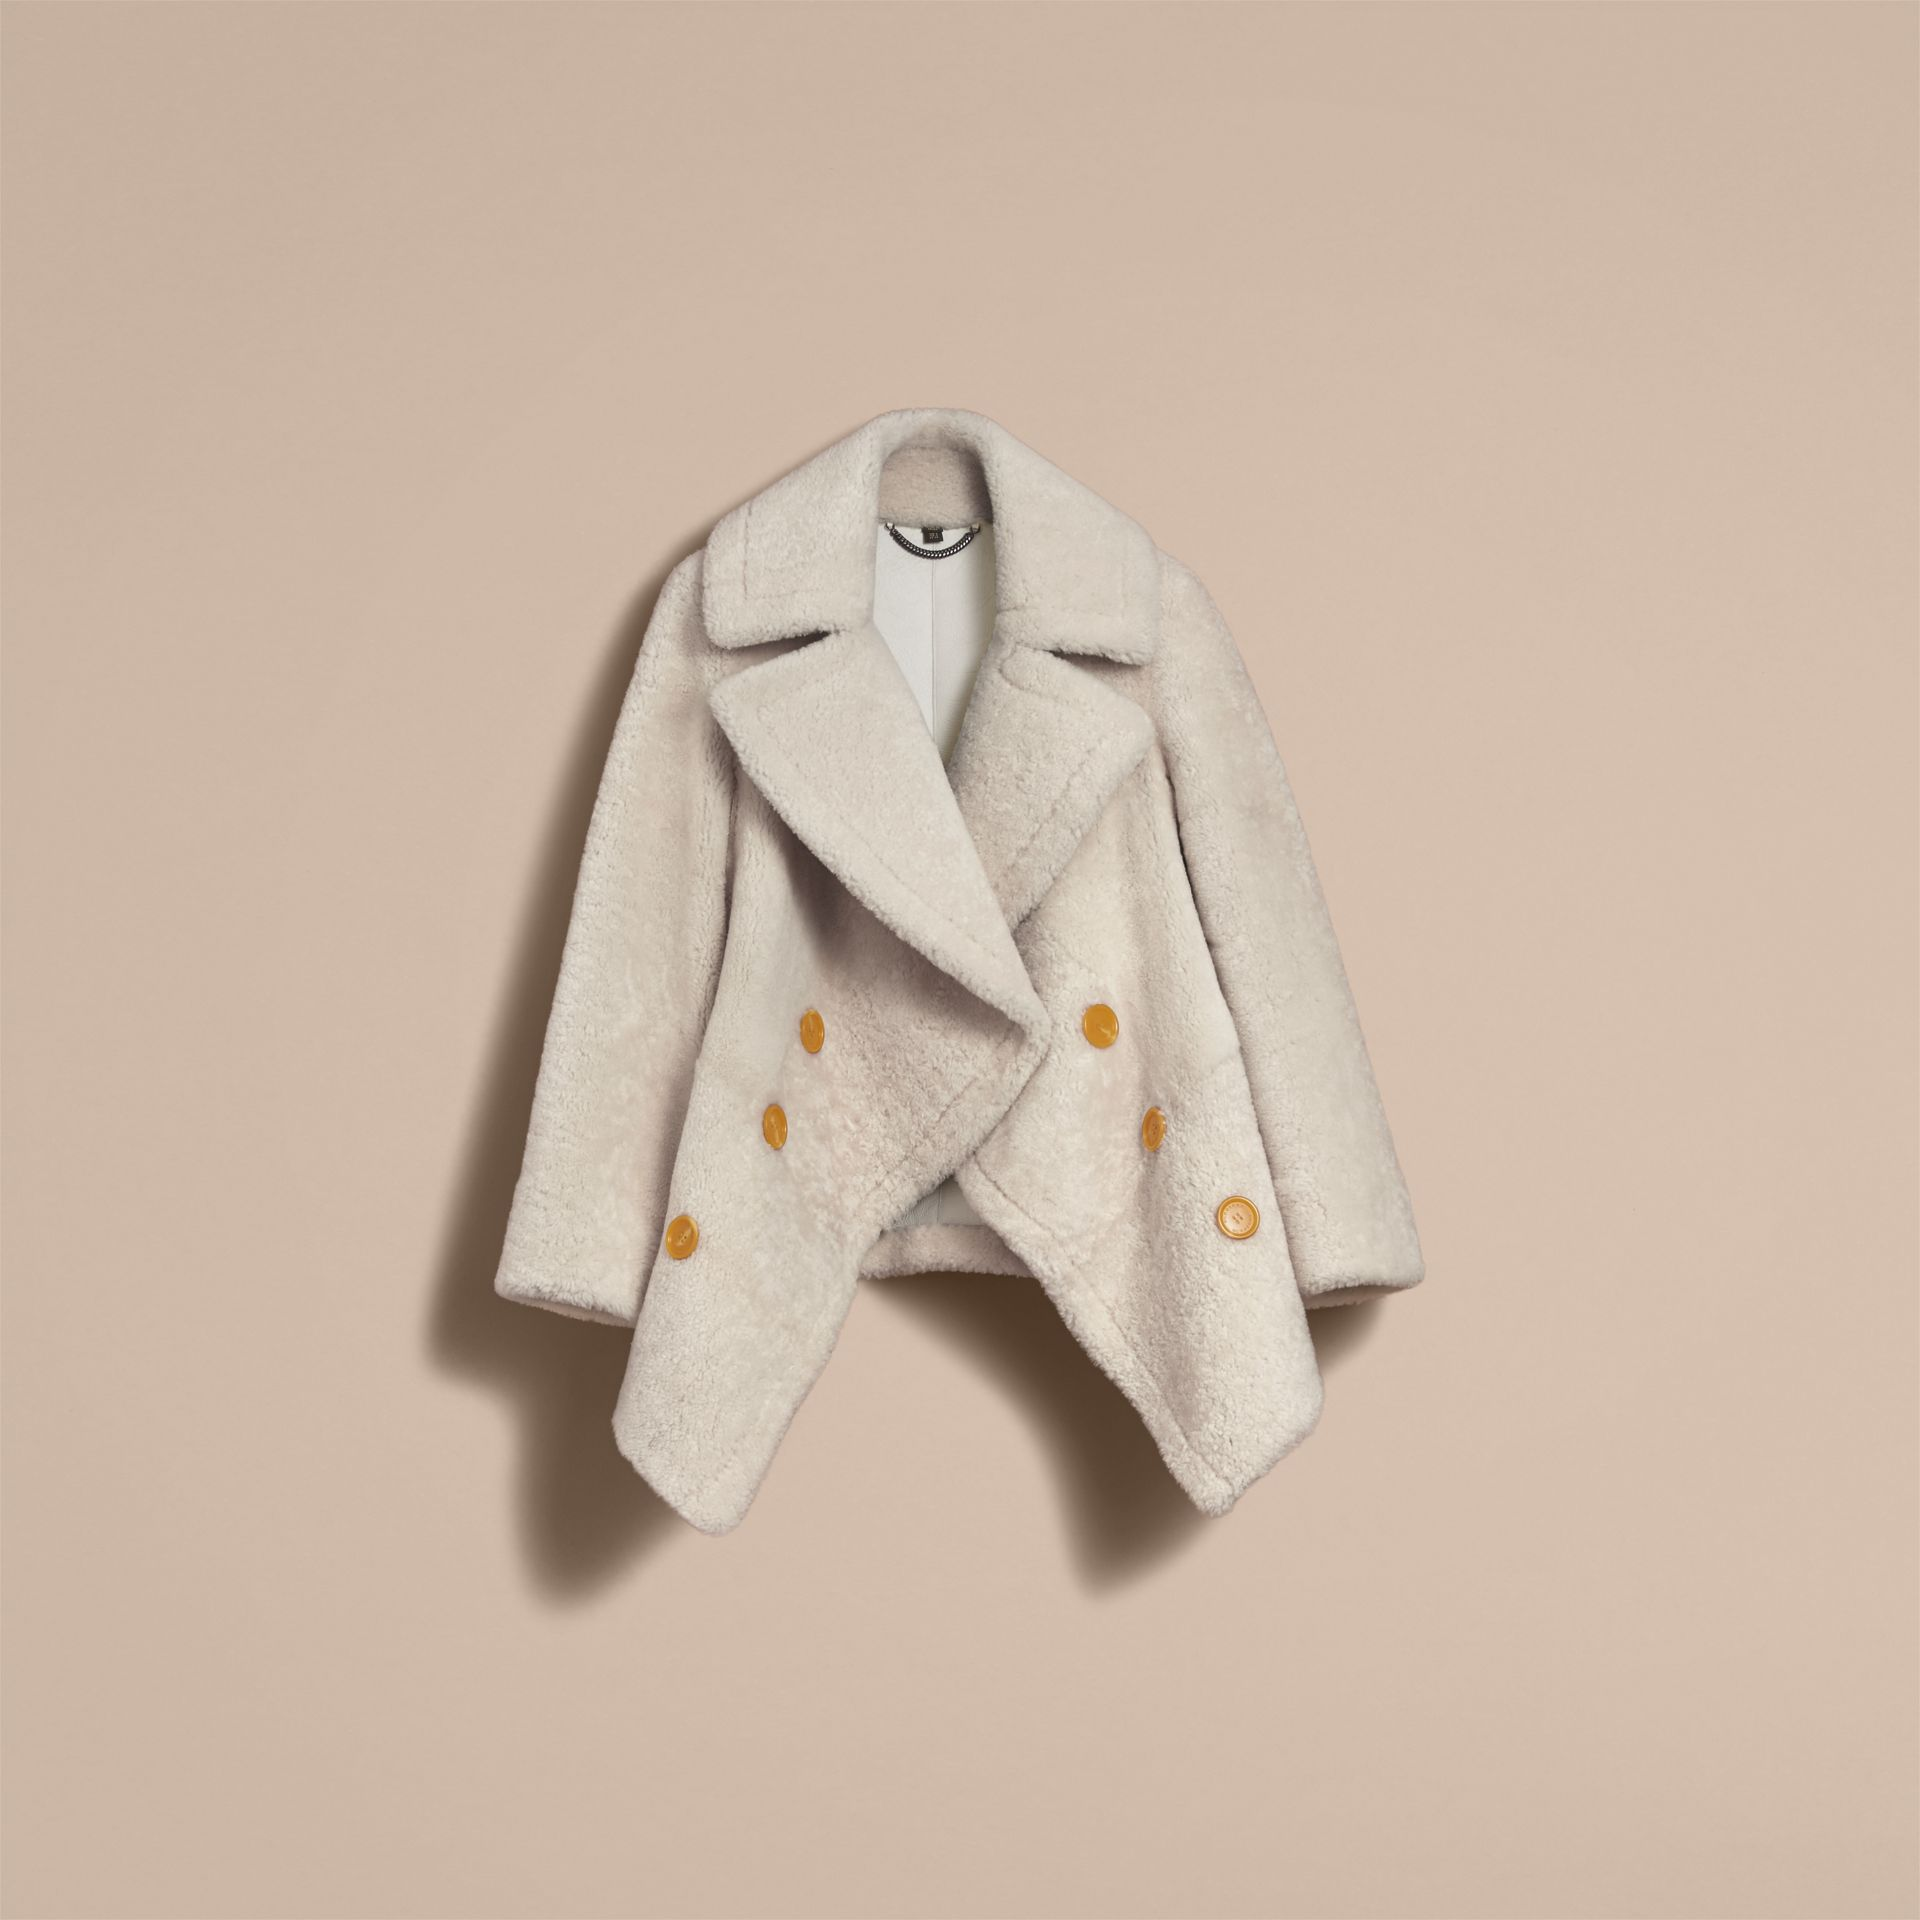 Oversize Collar Teddy Shearling Pea Coat - Women | Burberry - gallery image 4